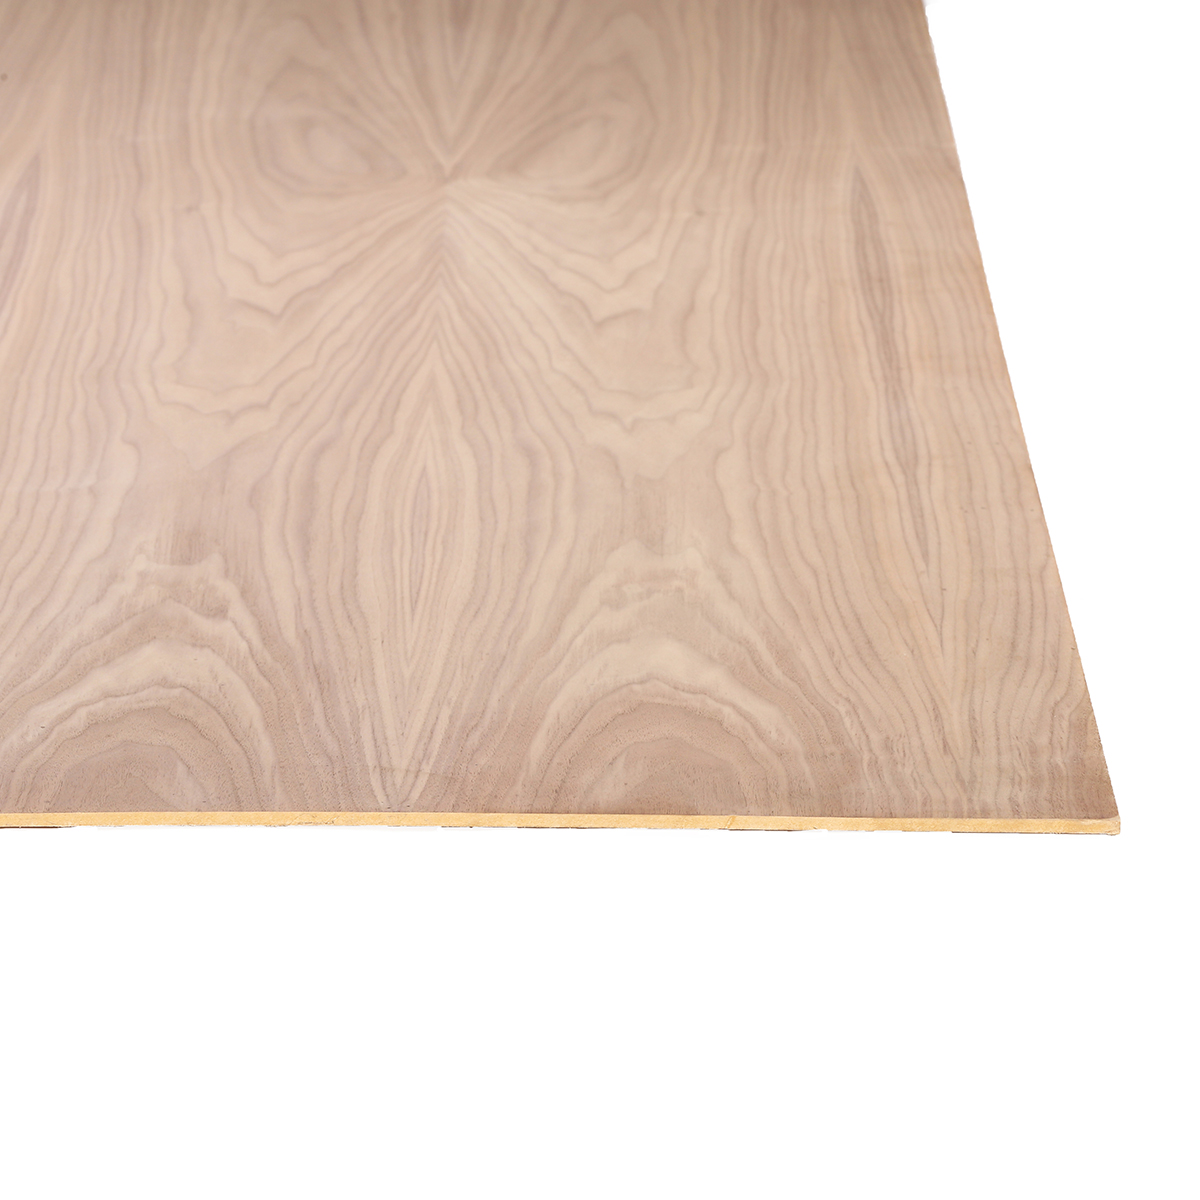 Cabinet plywood grades cabinets matttroy